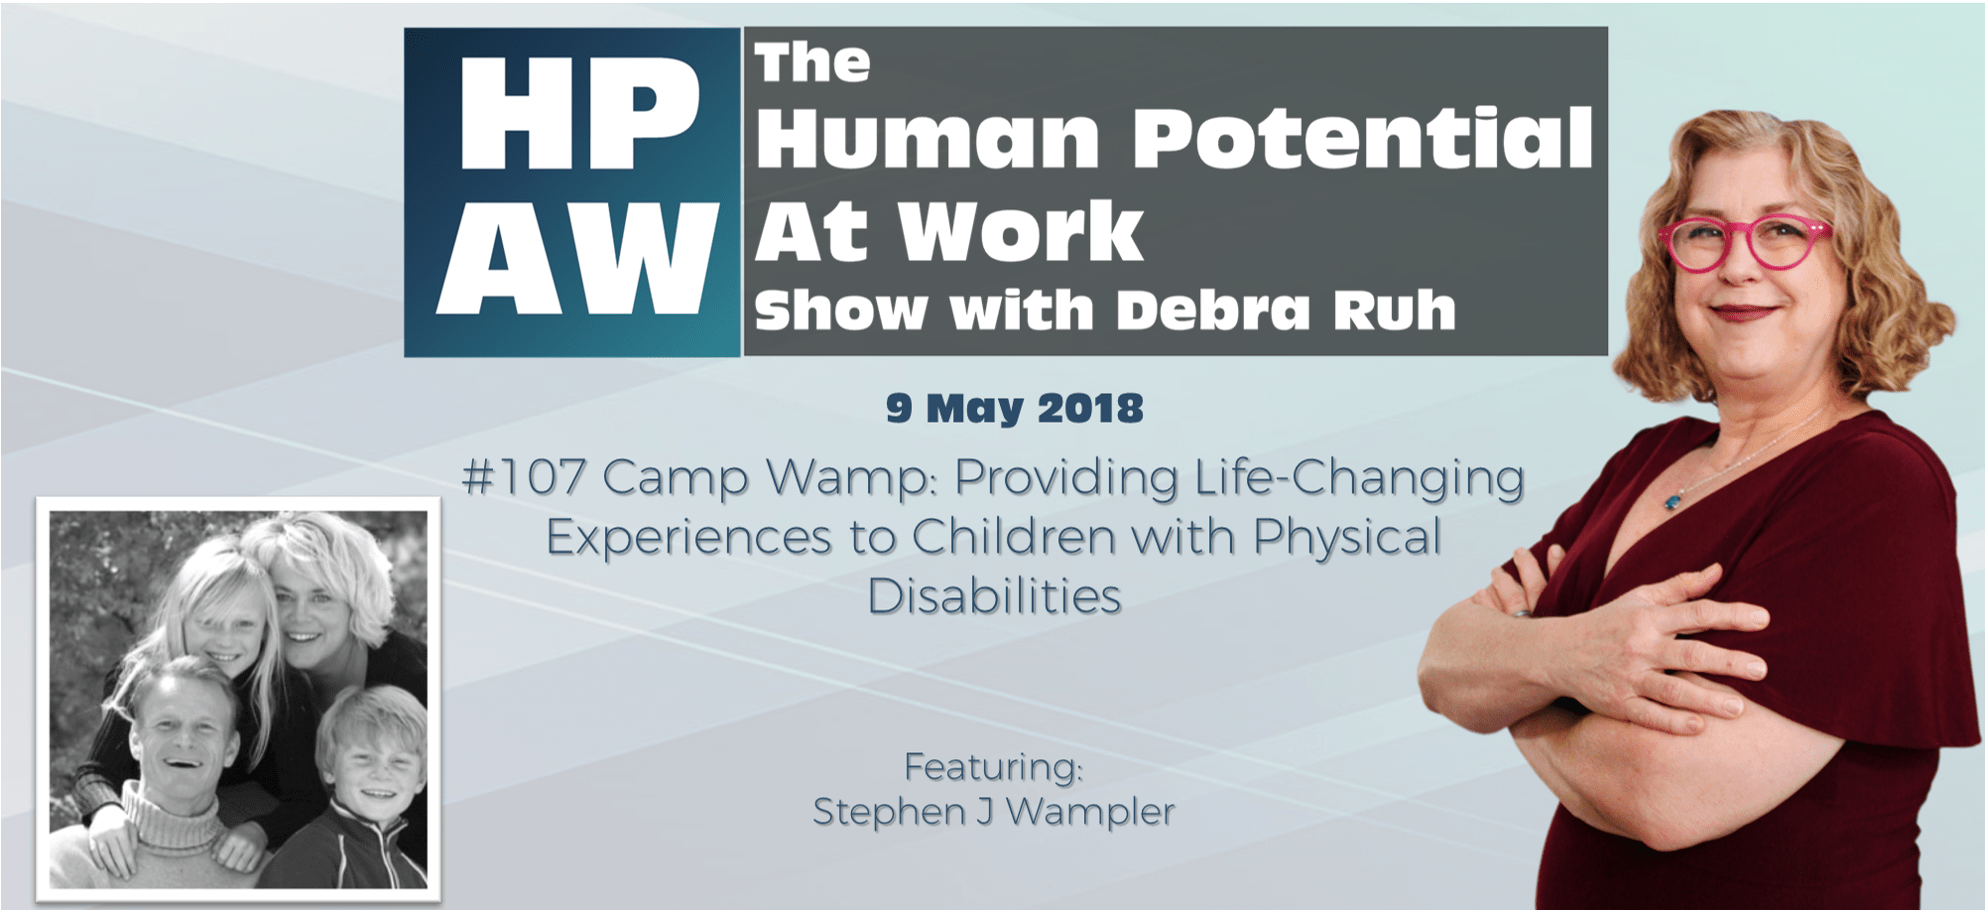 Episode Flyer for episode 107: Camp Wamp: Providing Life-Changing Experiences to Children with Physical Disabilities